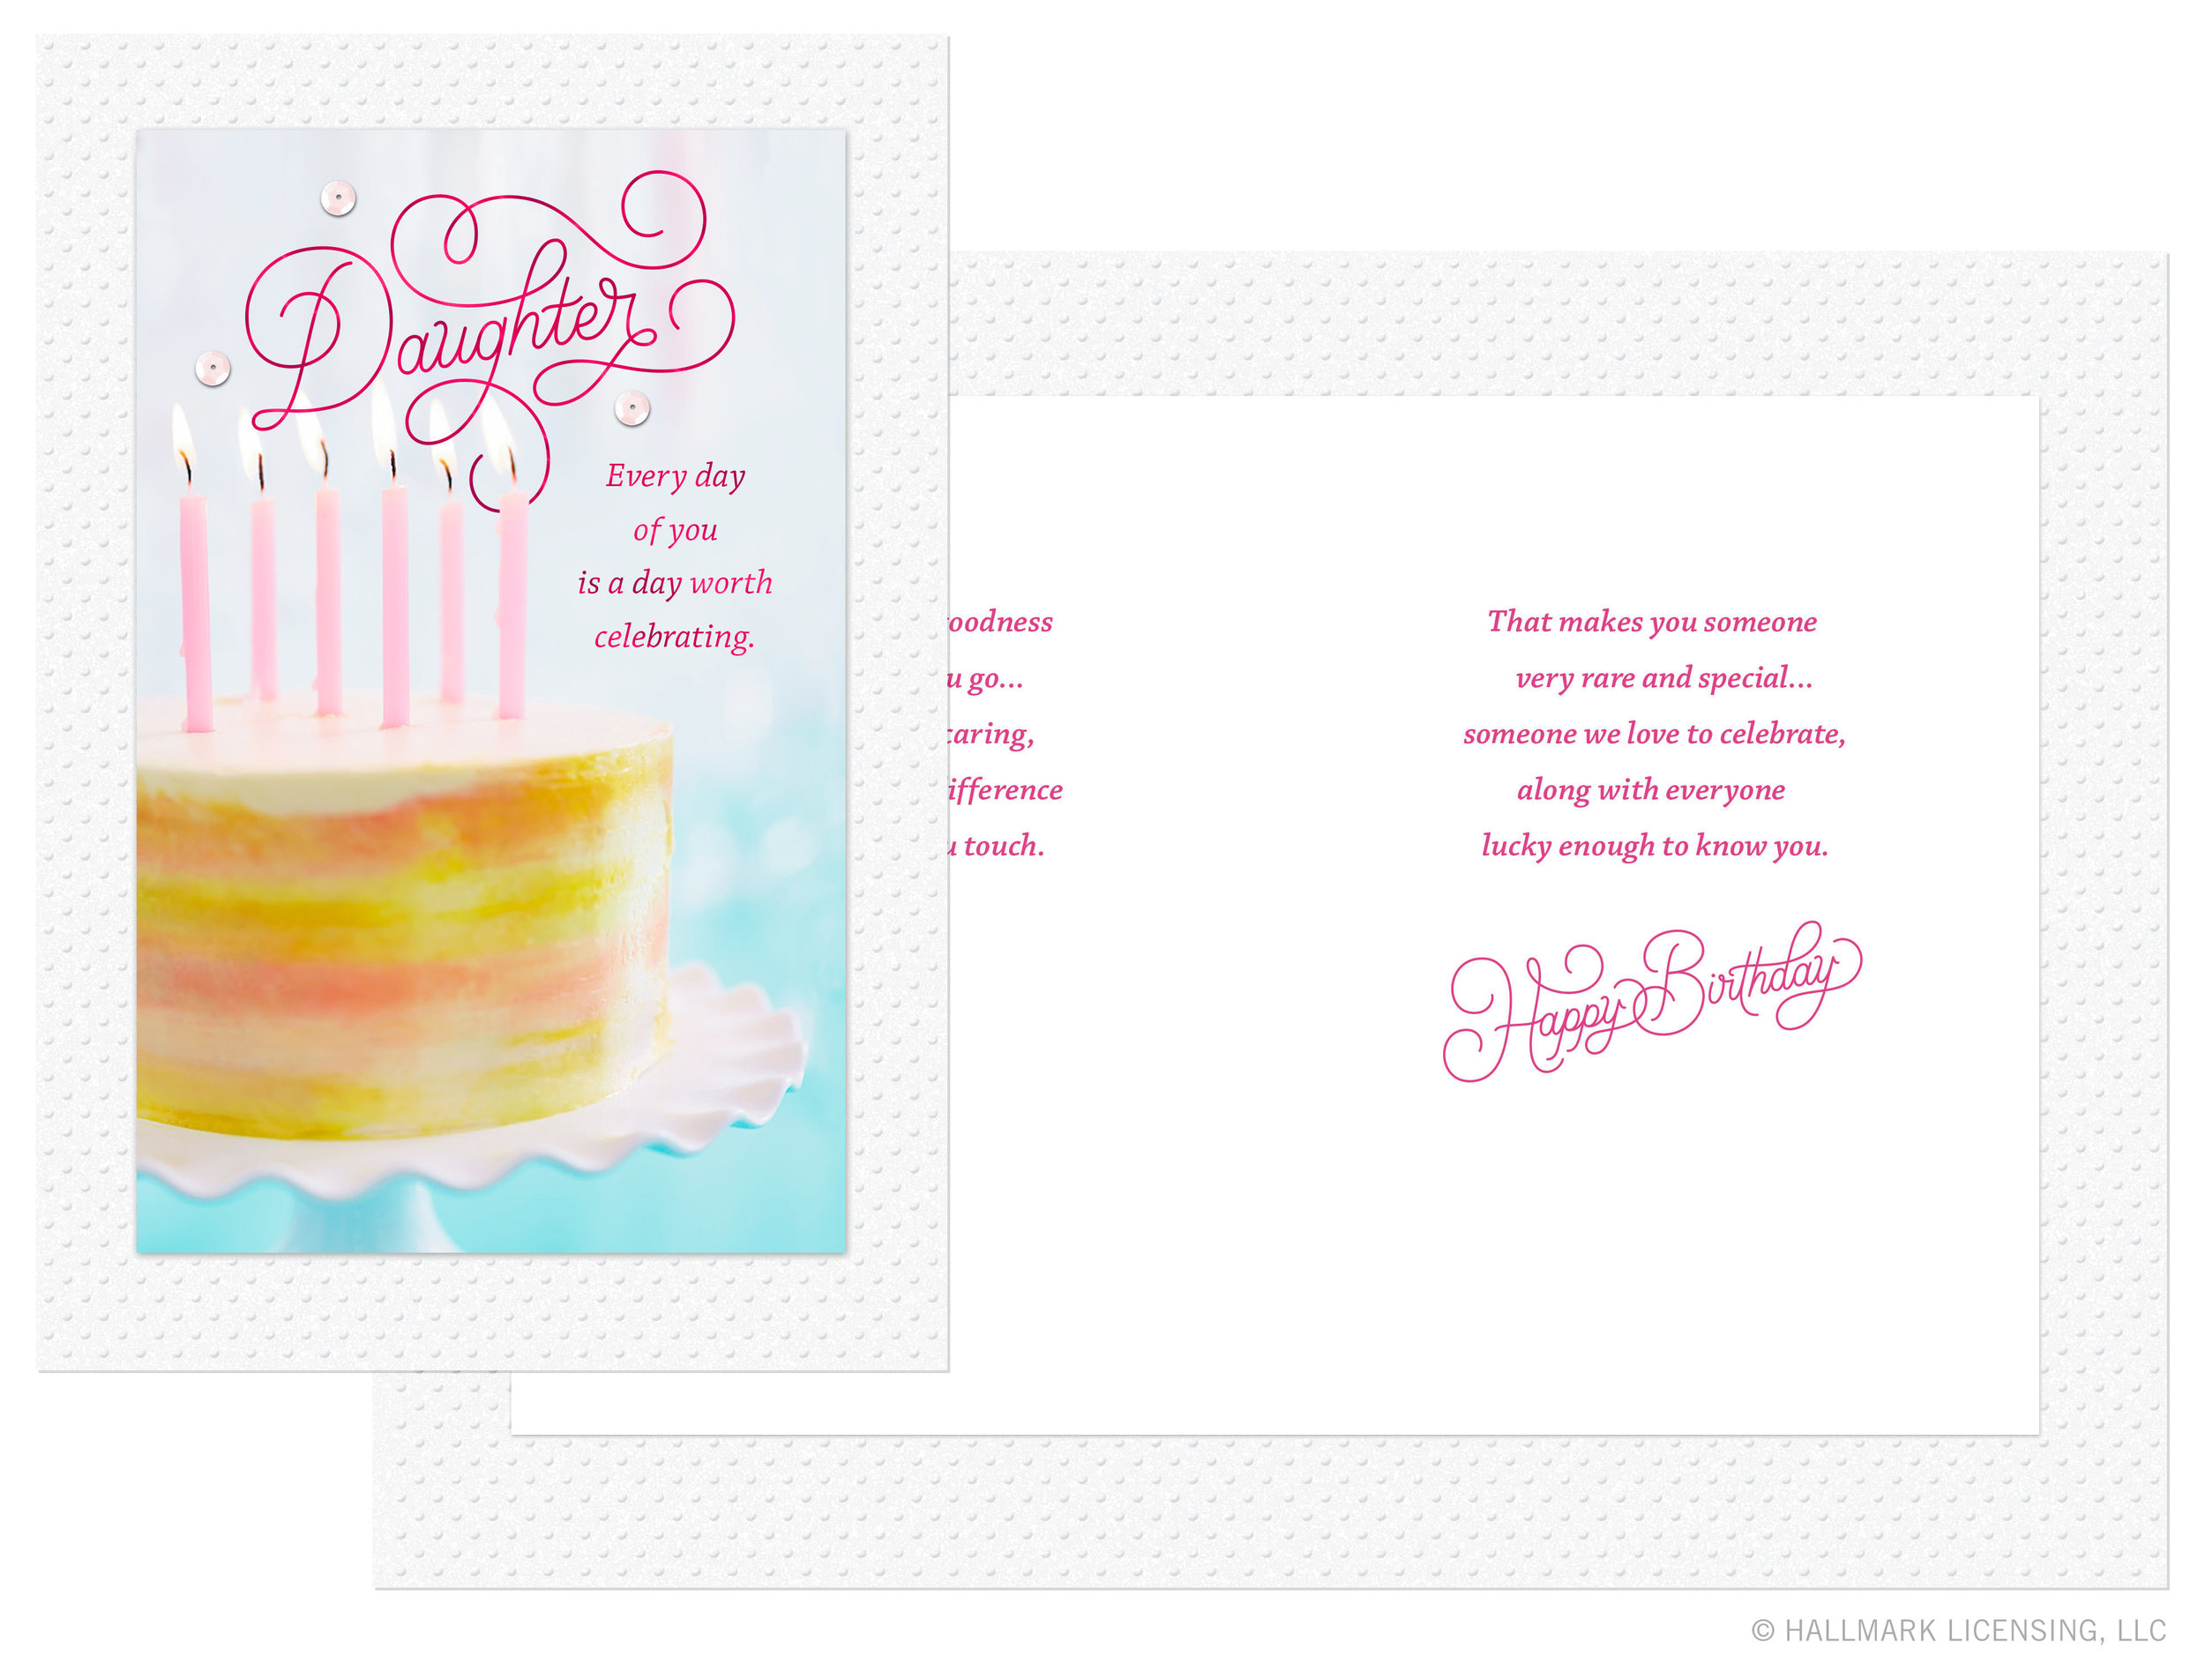 Letters Are Lovely | Birthday Cards for Hallmark